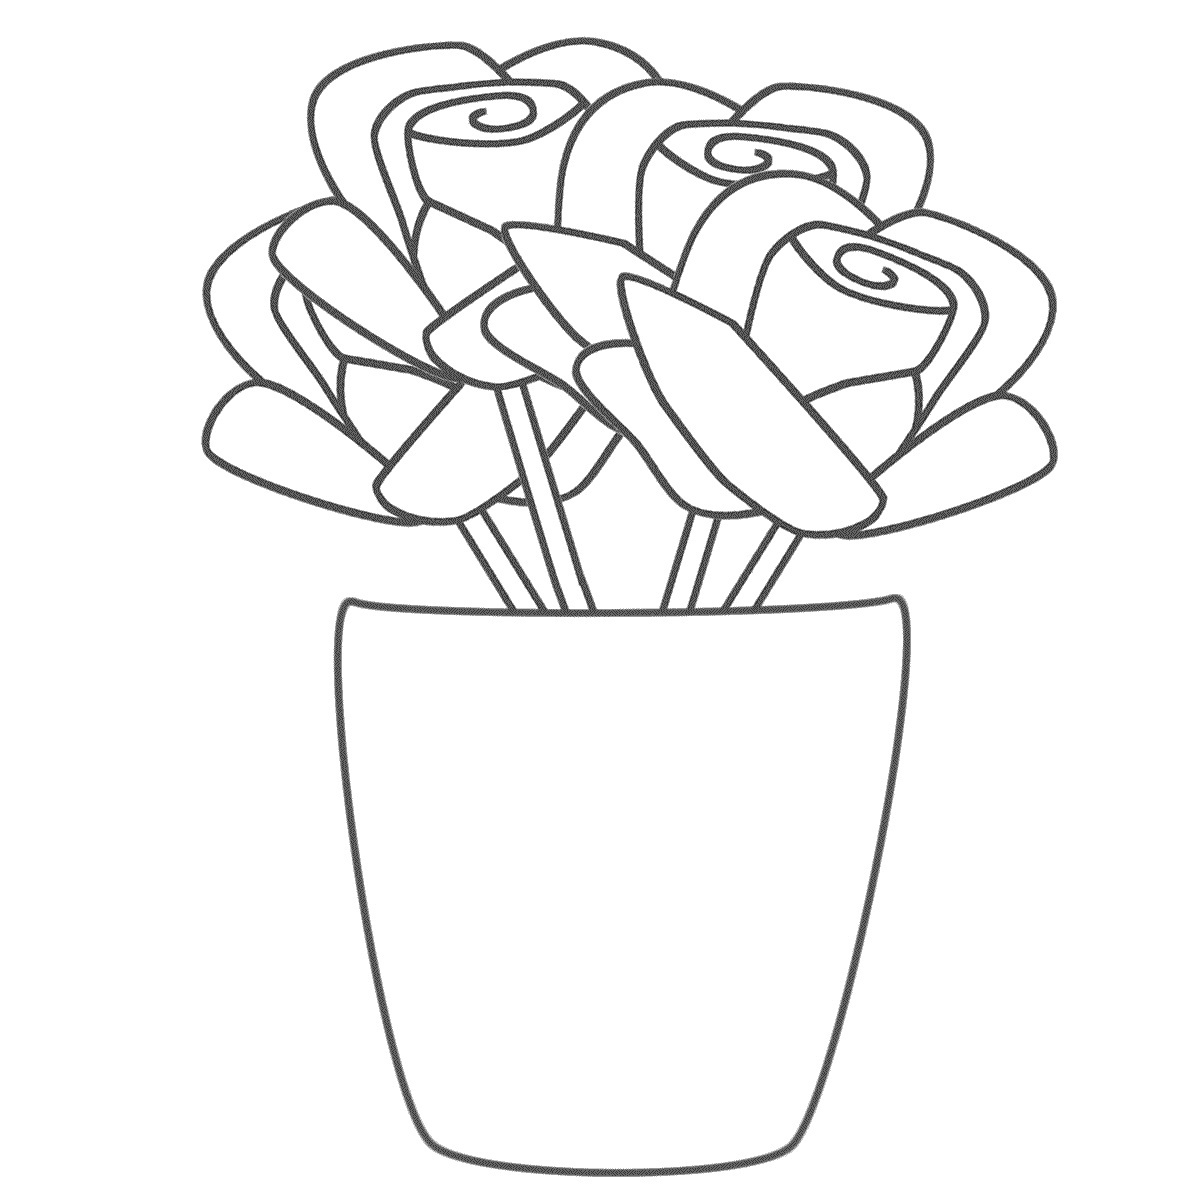 rose coloring pages for kids - photo#17